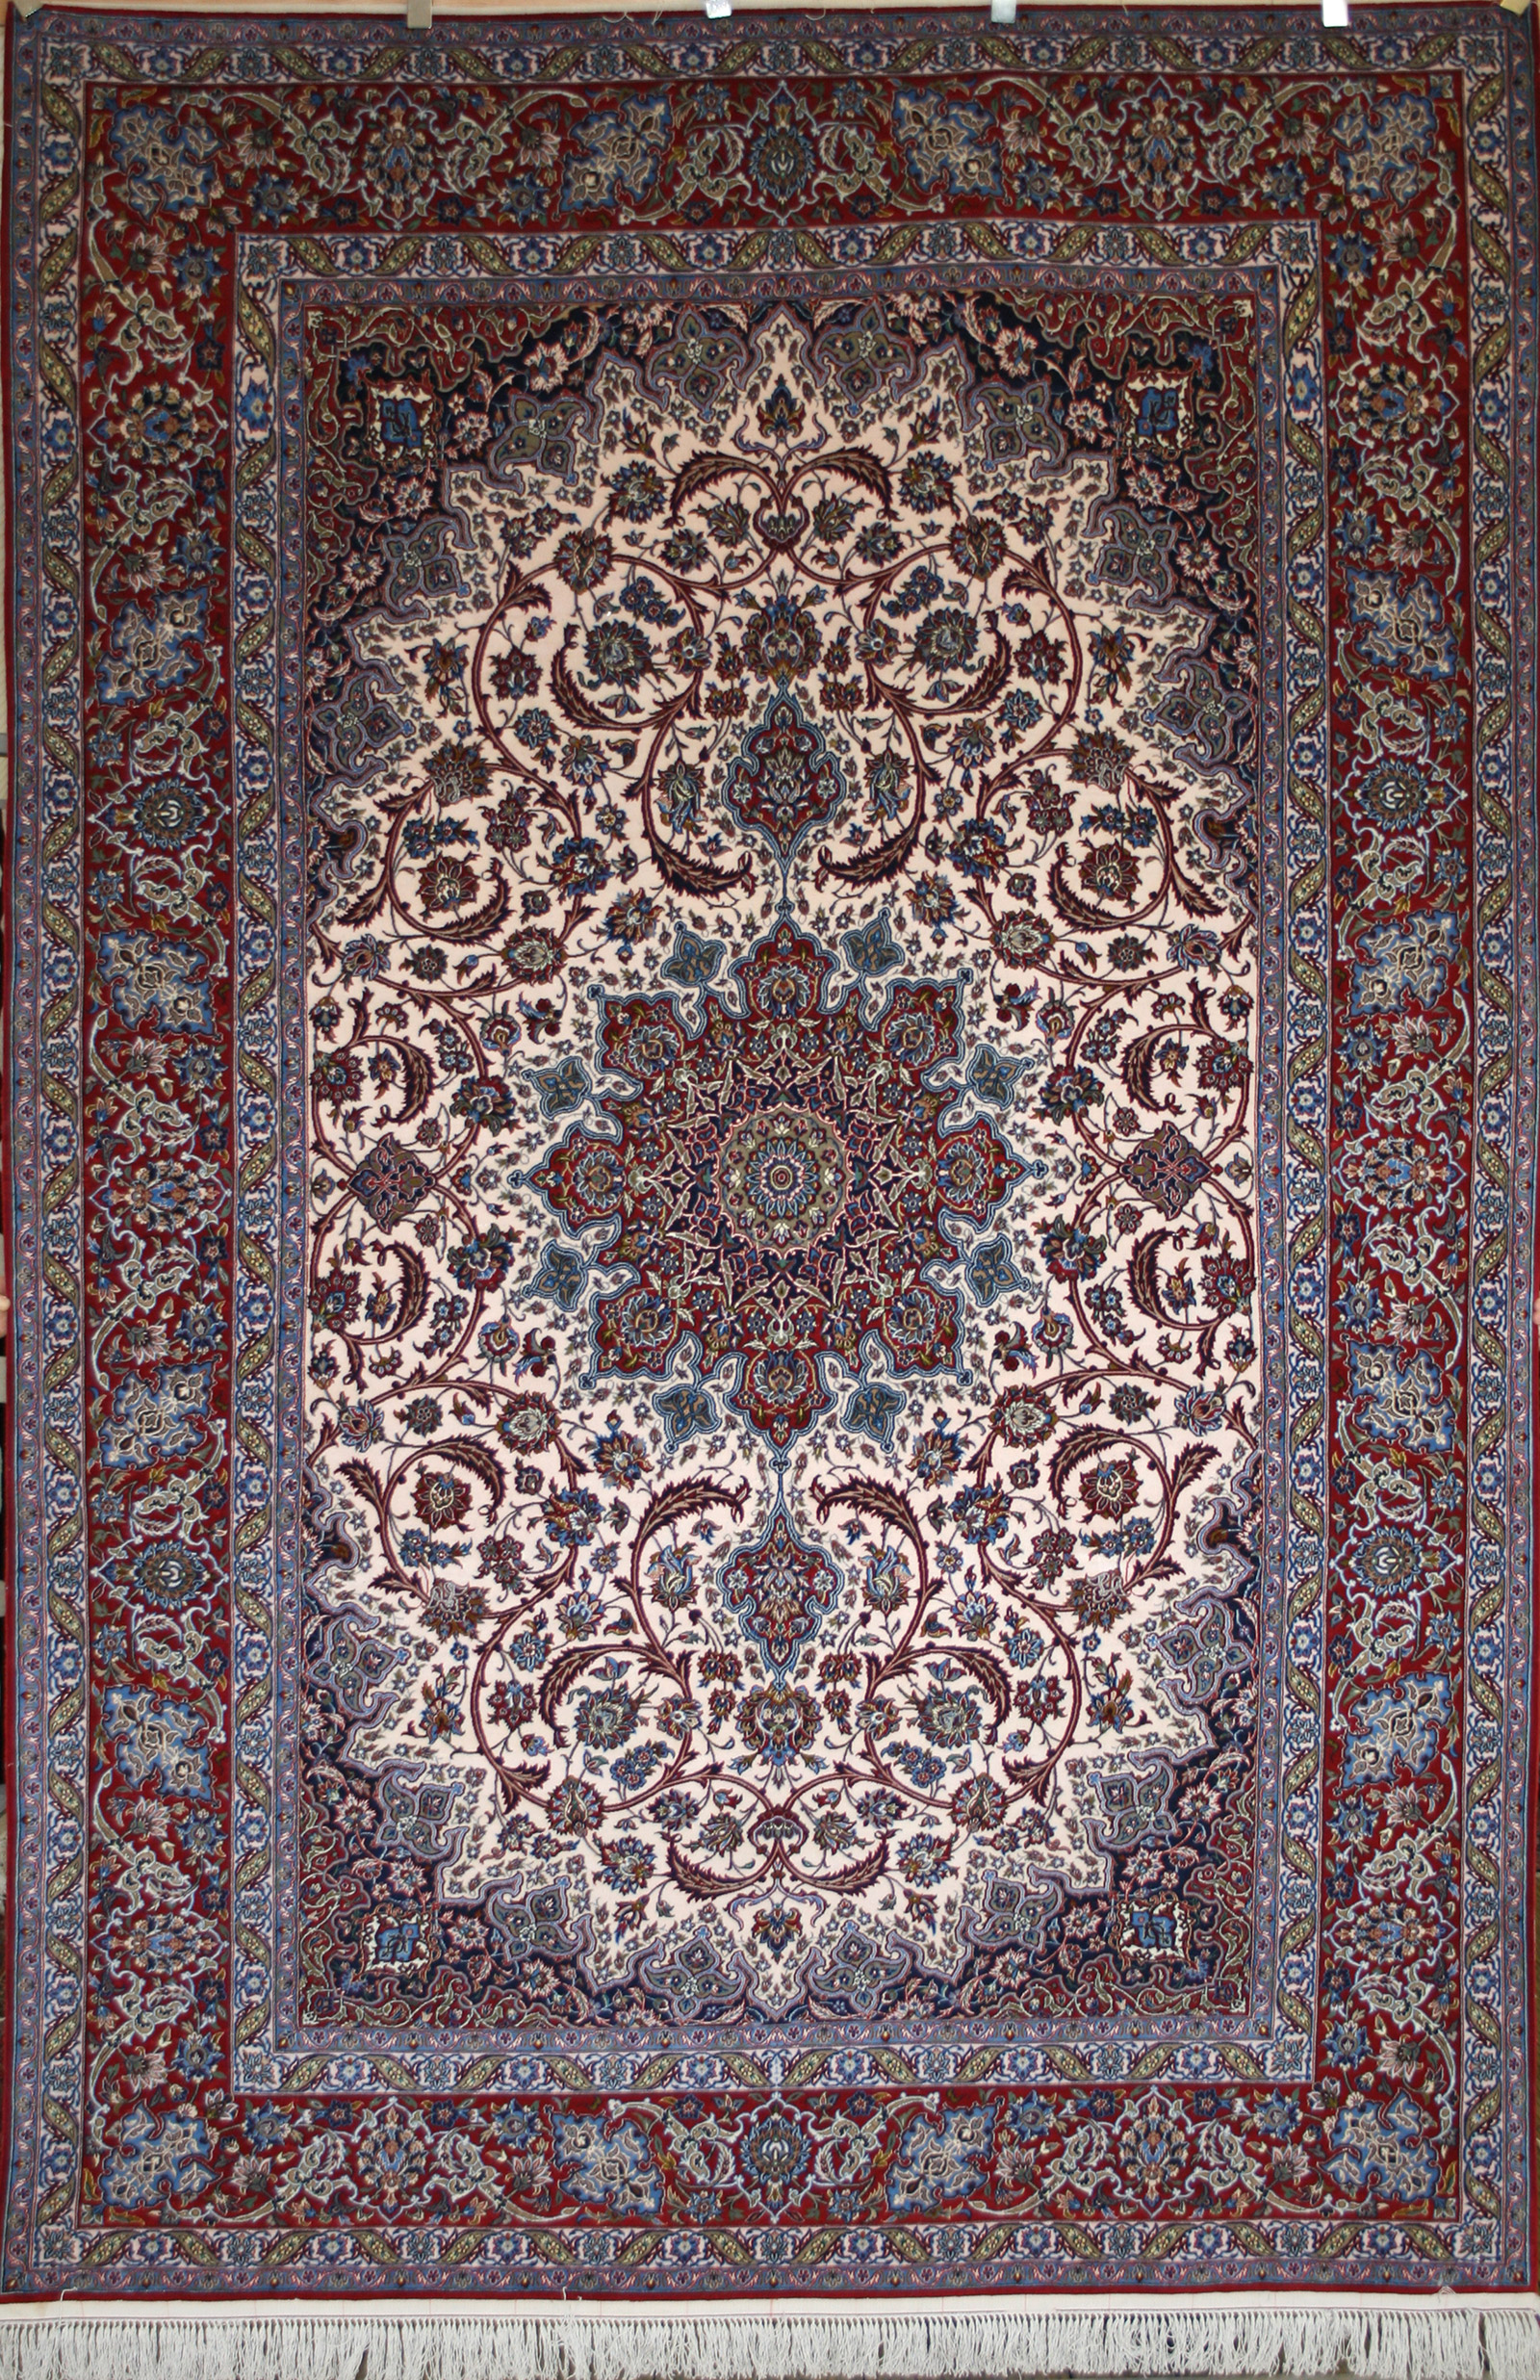 Isfahan Rug Origin And Description Guide